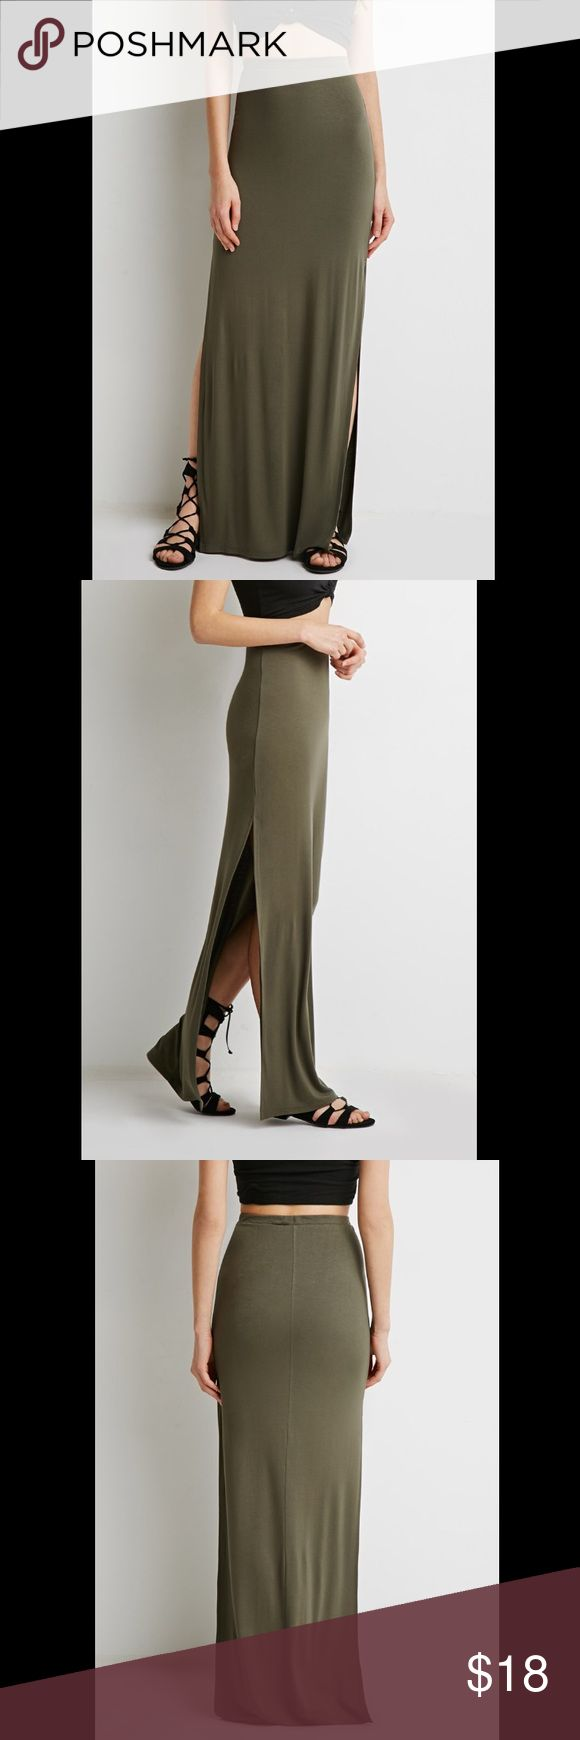 Olive Green Maxi Skirt with Double Slits Pretty olive green Skirt with slits on both sides. Worn only once. Forever 21 Skirts Maxi